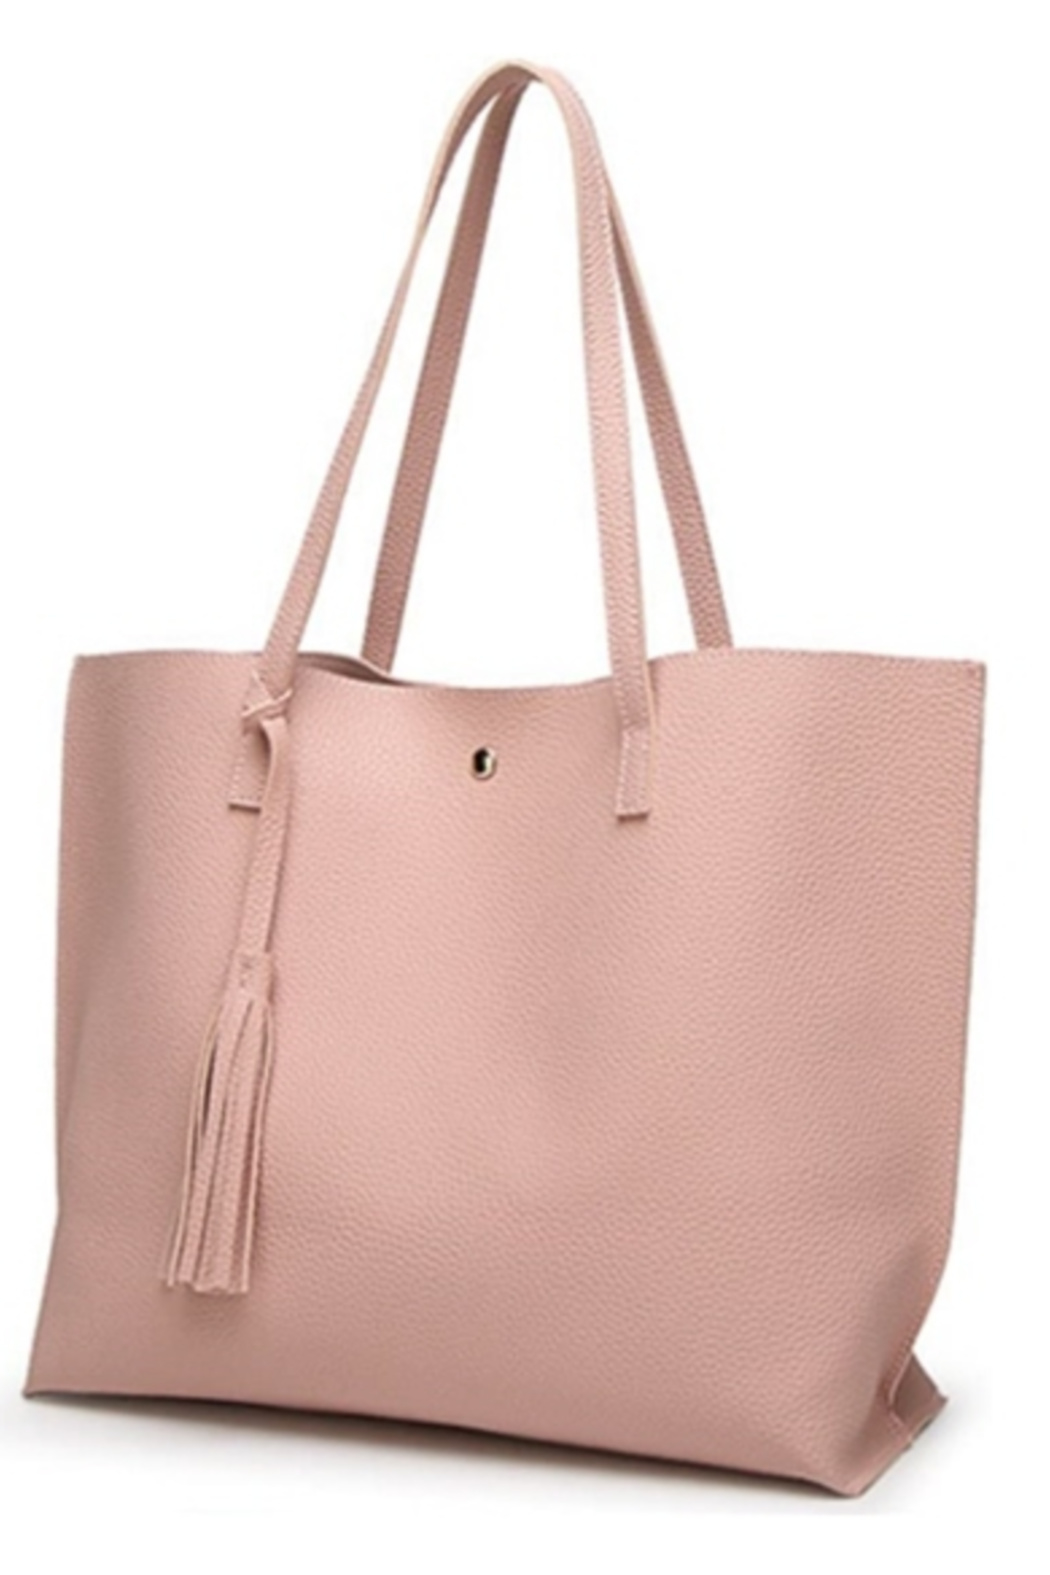 Mimi's Gift Gallery Pink Vegan Leather Tote - Main Image